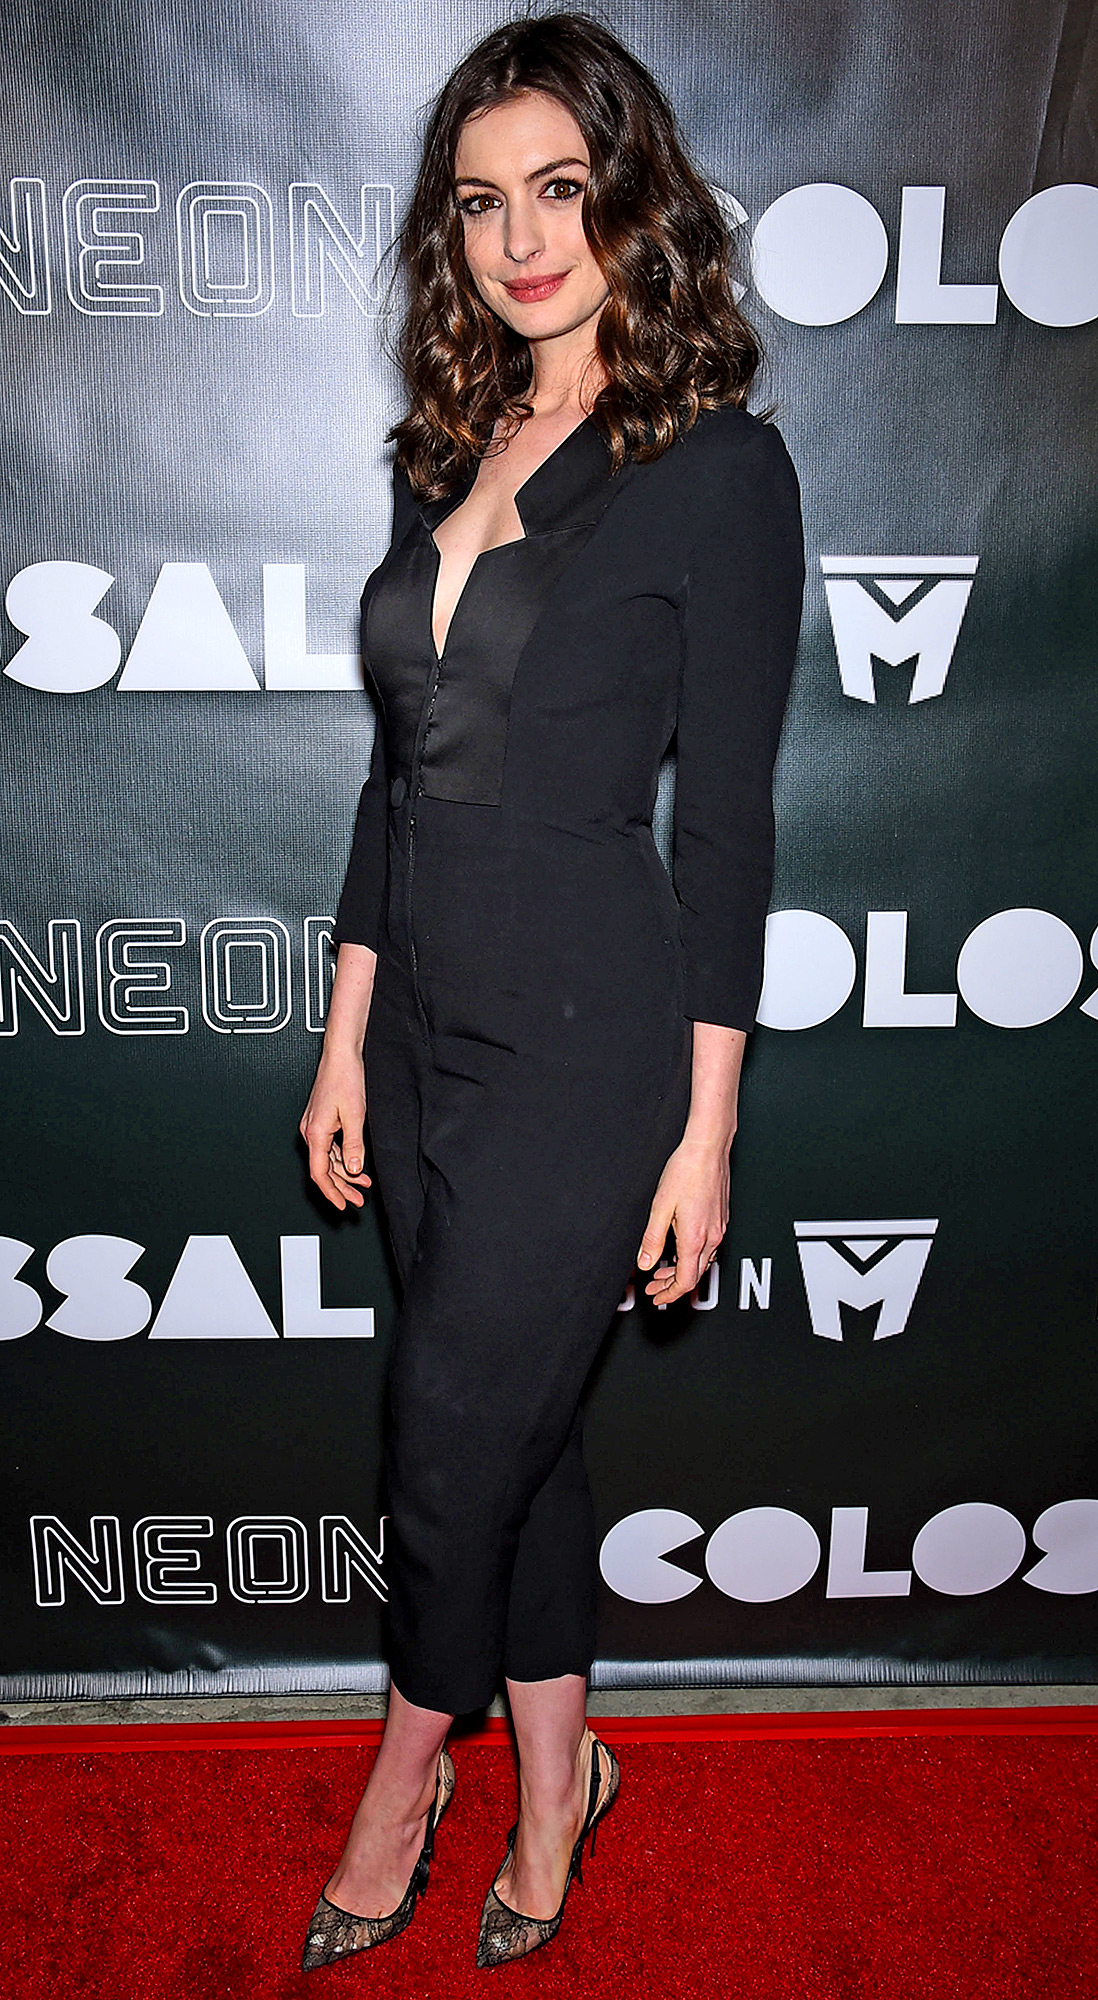 Anne Hathaway arrives on the Red carpet at Neon's 'Colossal' Los Angeles film premiere